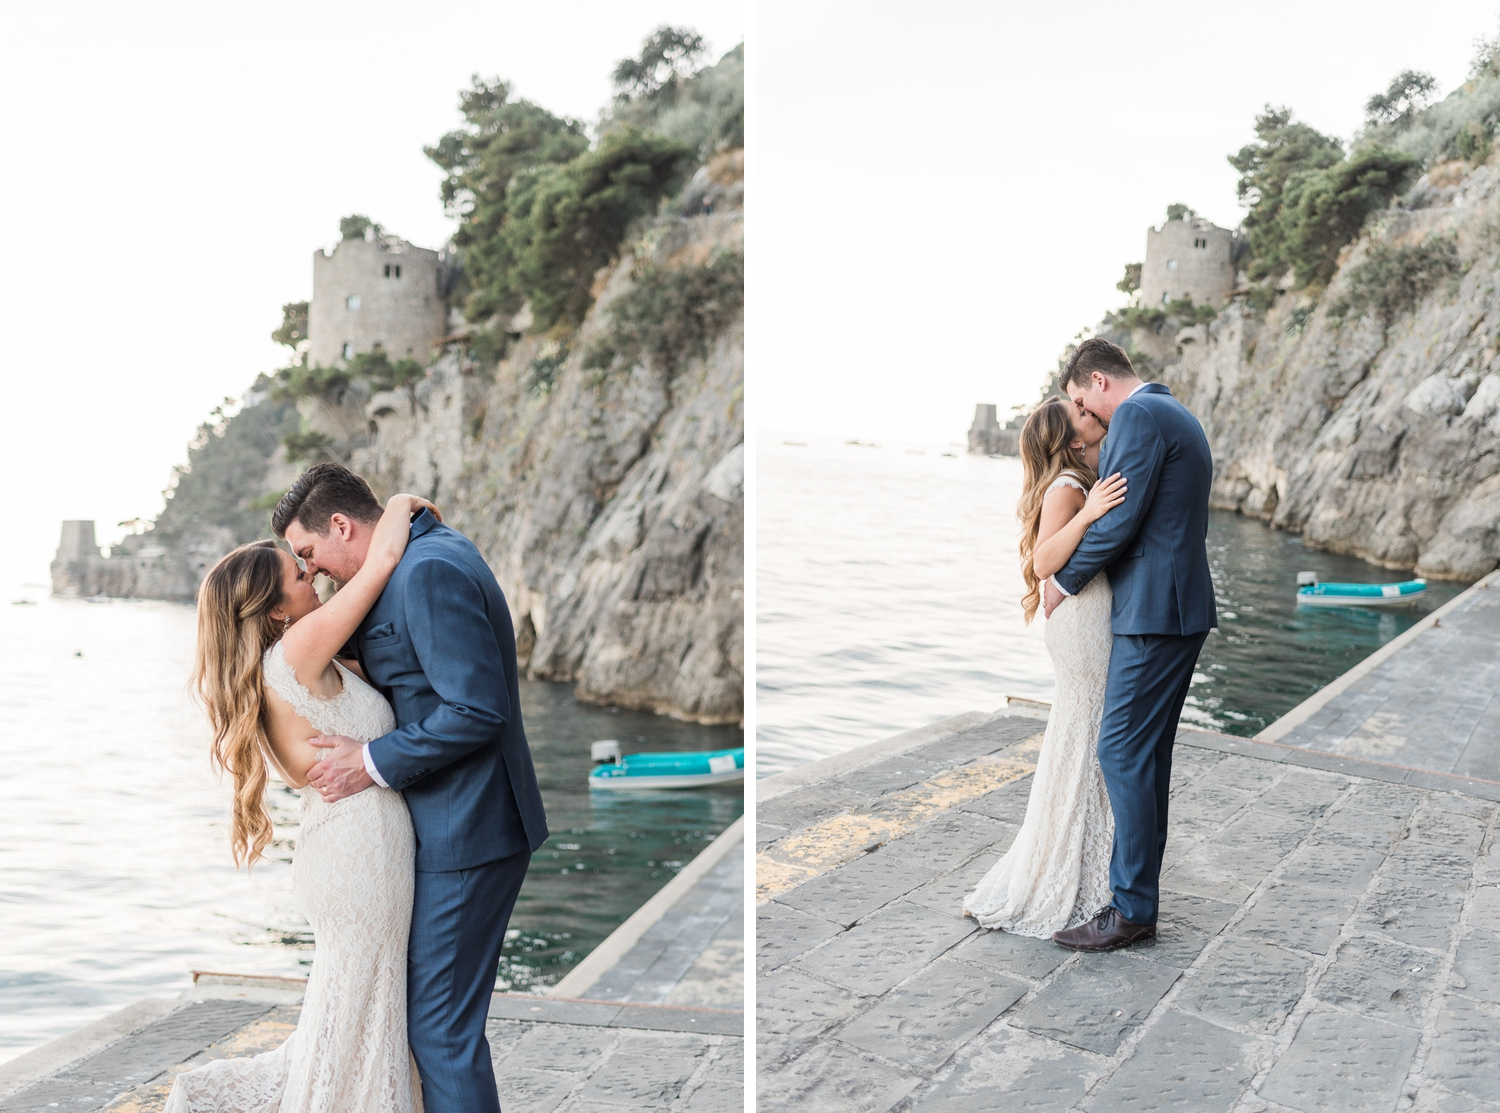 positano-wedding-photographer 43.jpg